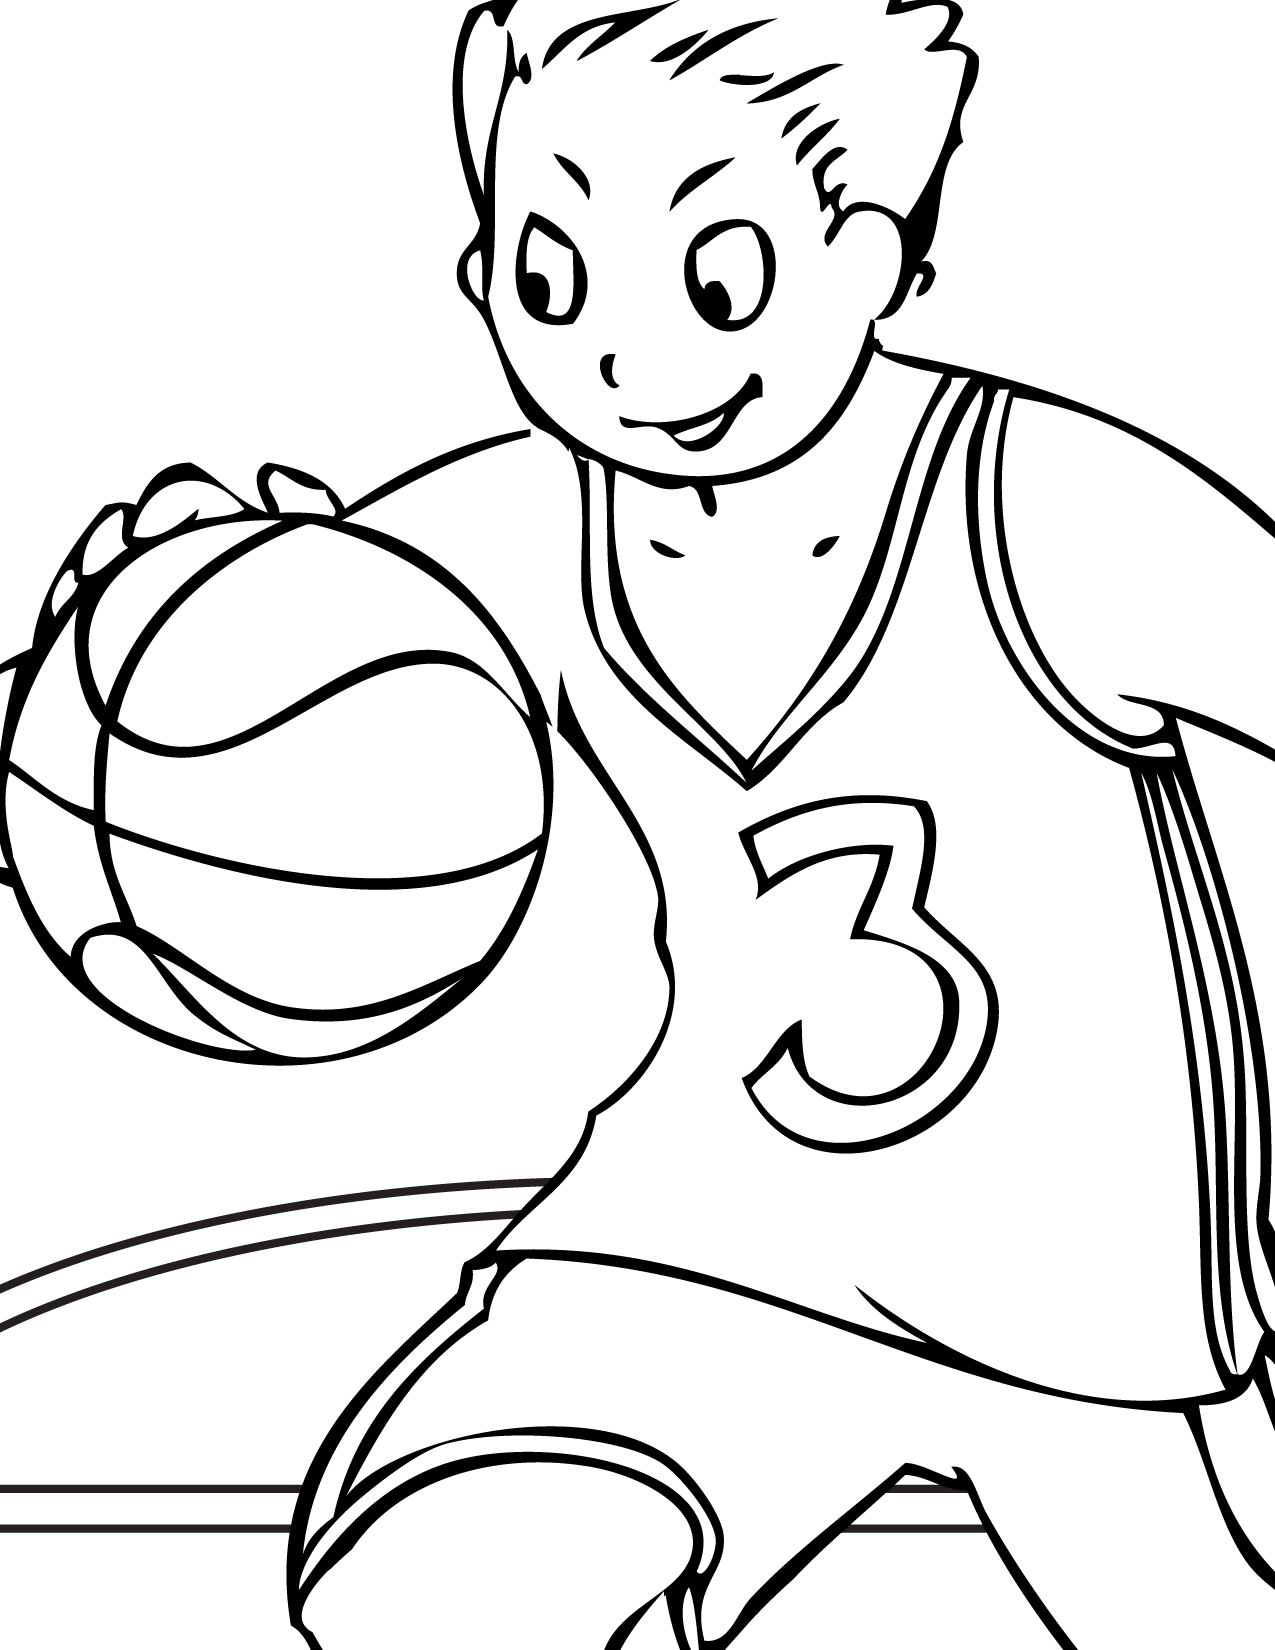 1275x1650 Basketball Player Free Coloring Page Kids, Sports Coloring Pages